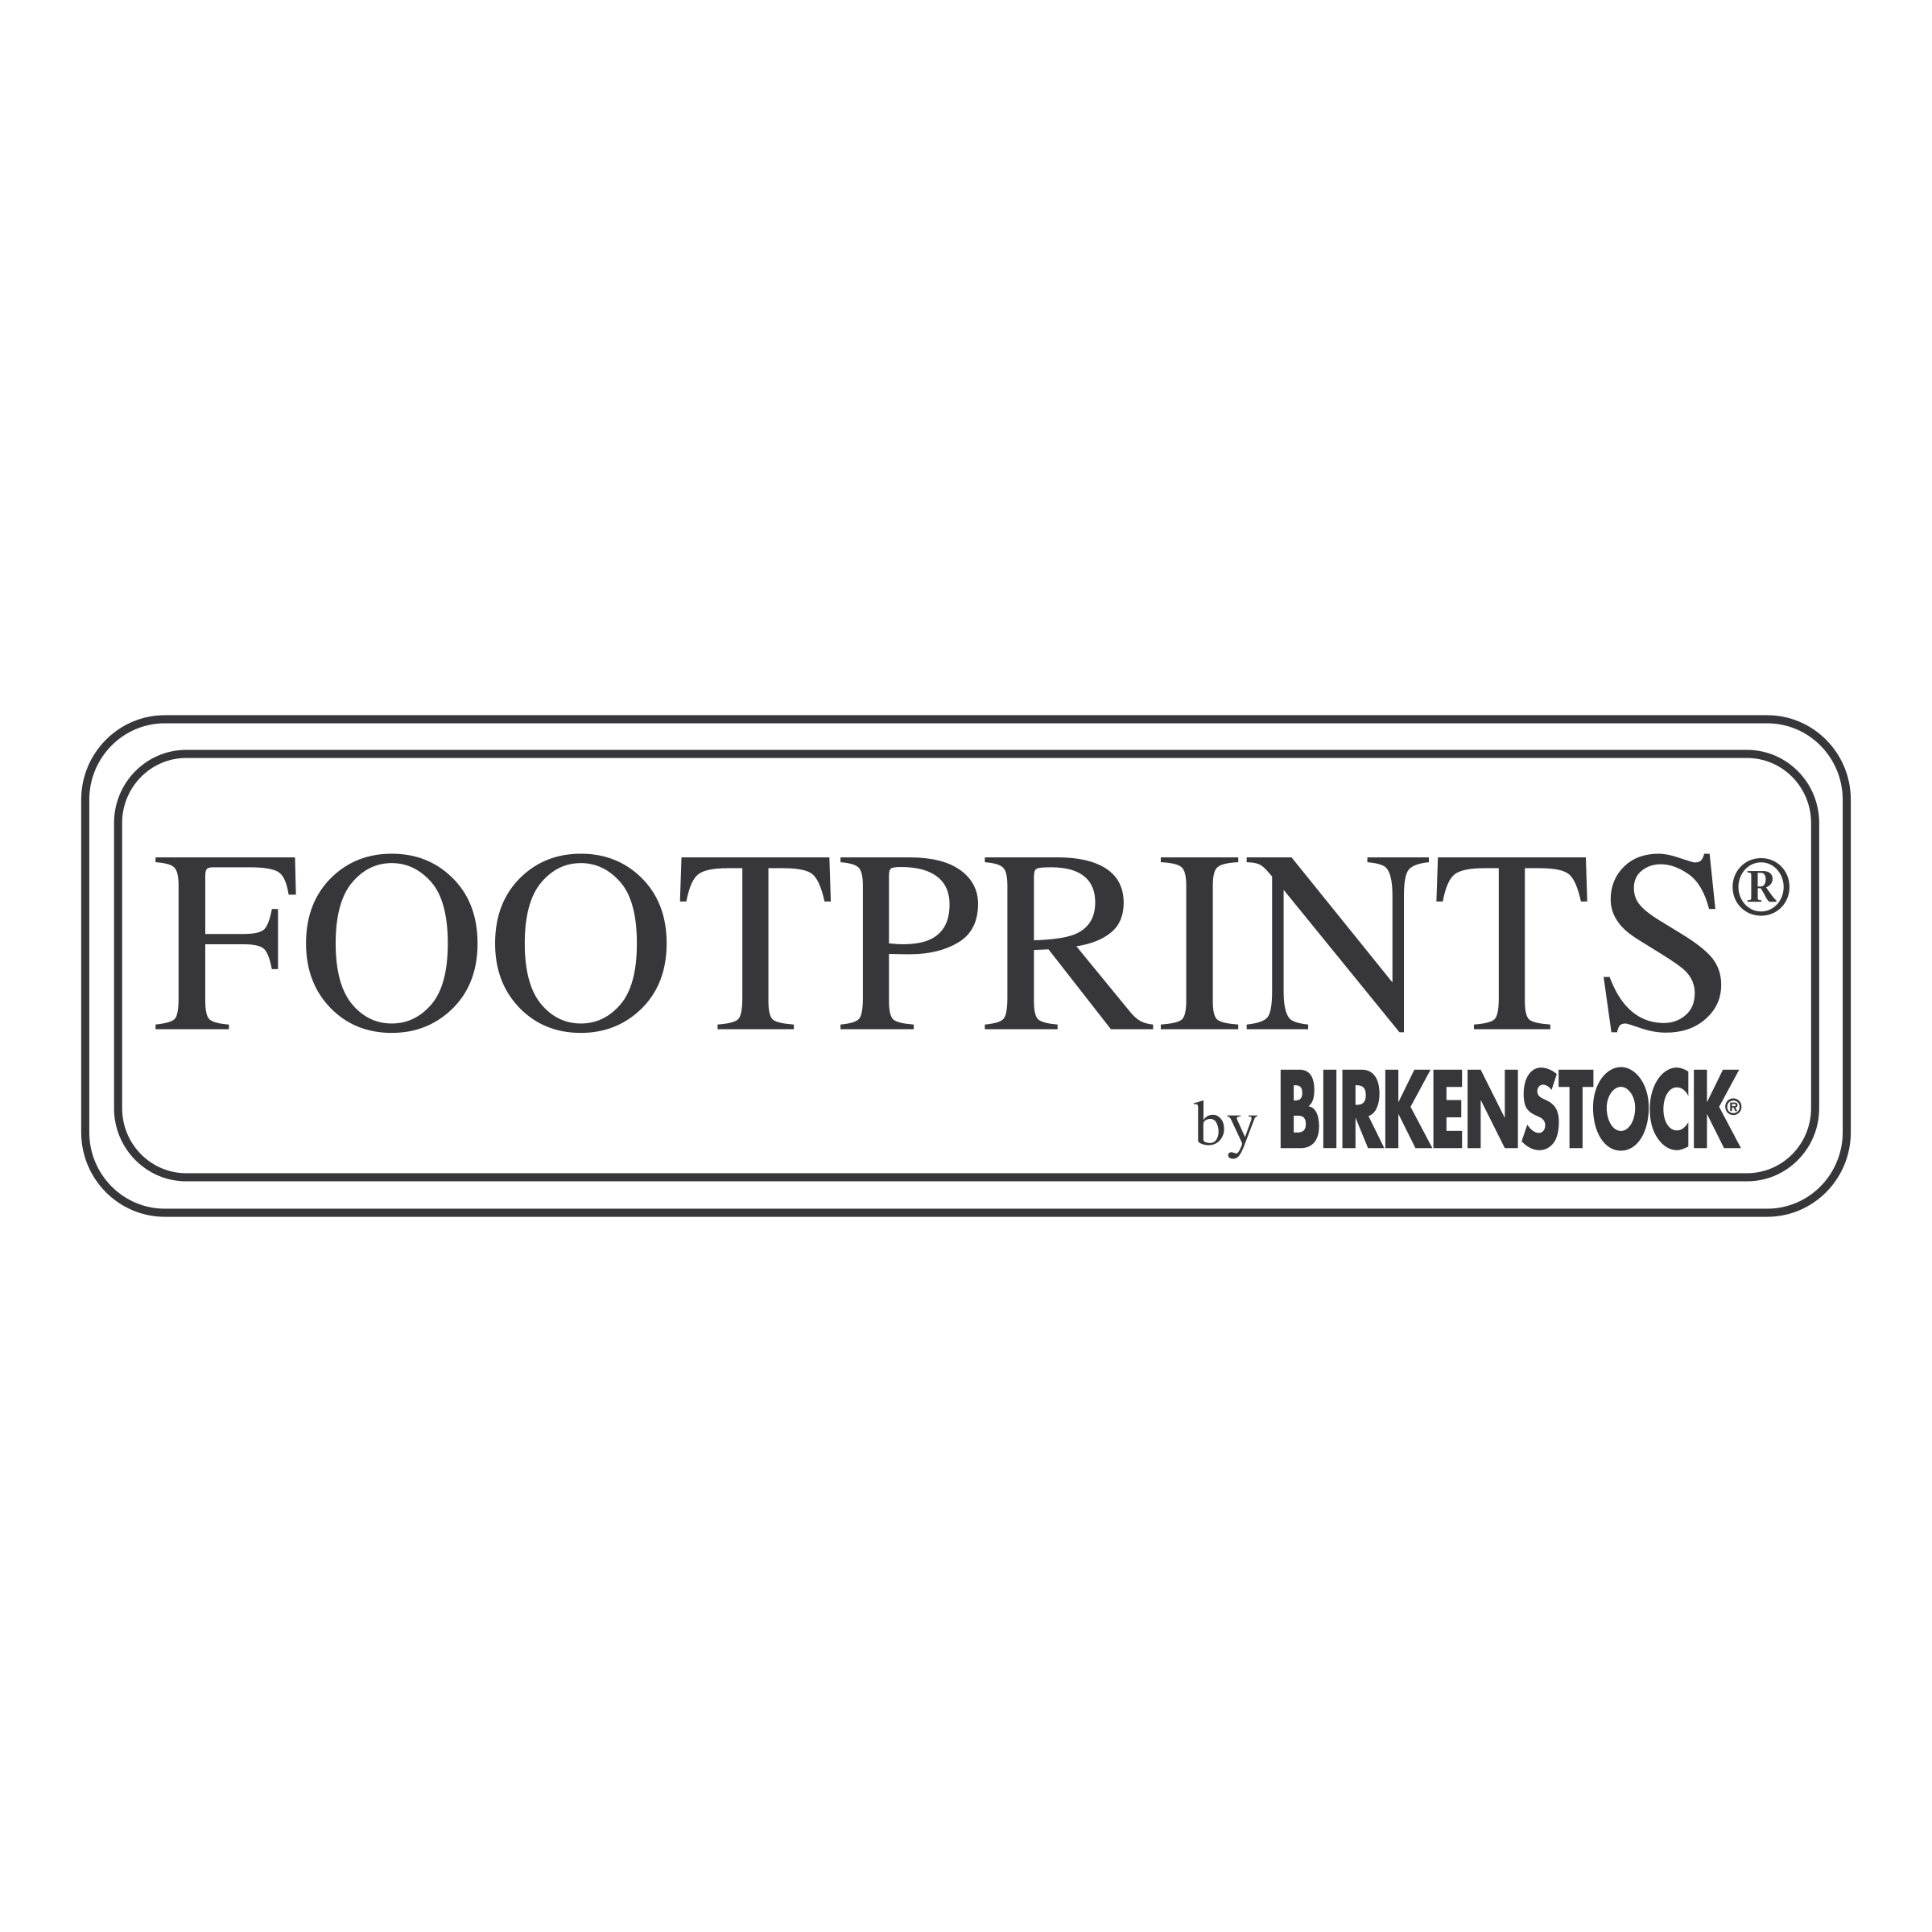 Footprints By Birkenstock Logo PNG Transparent